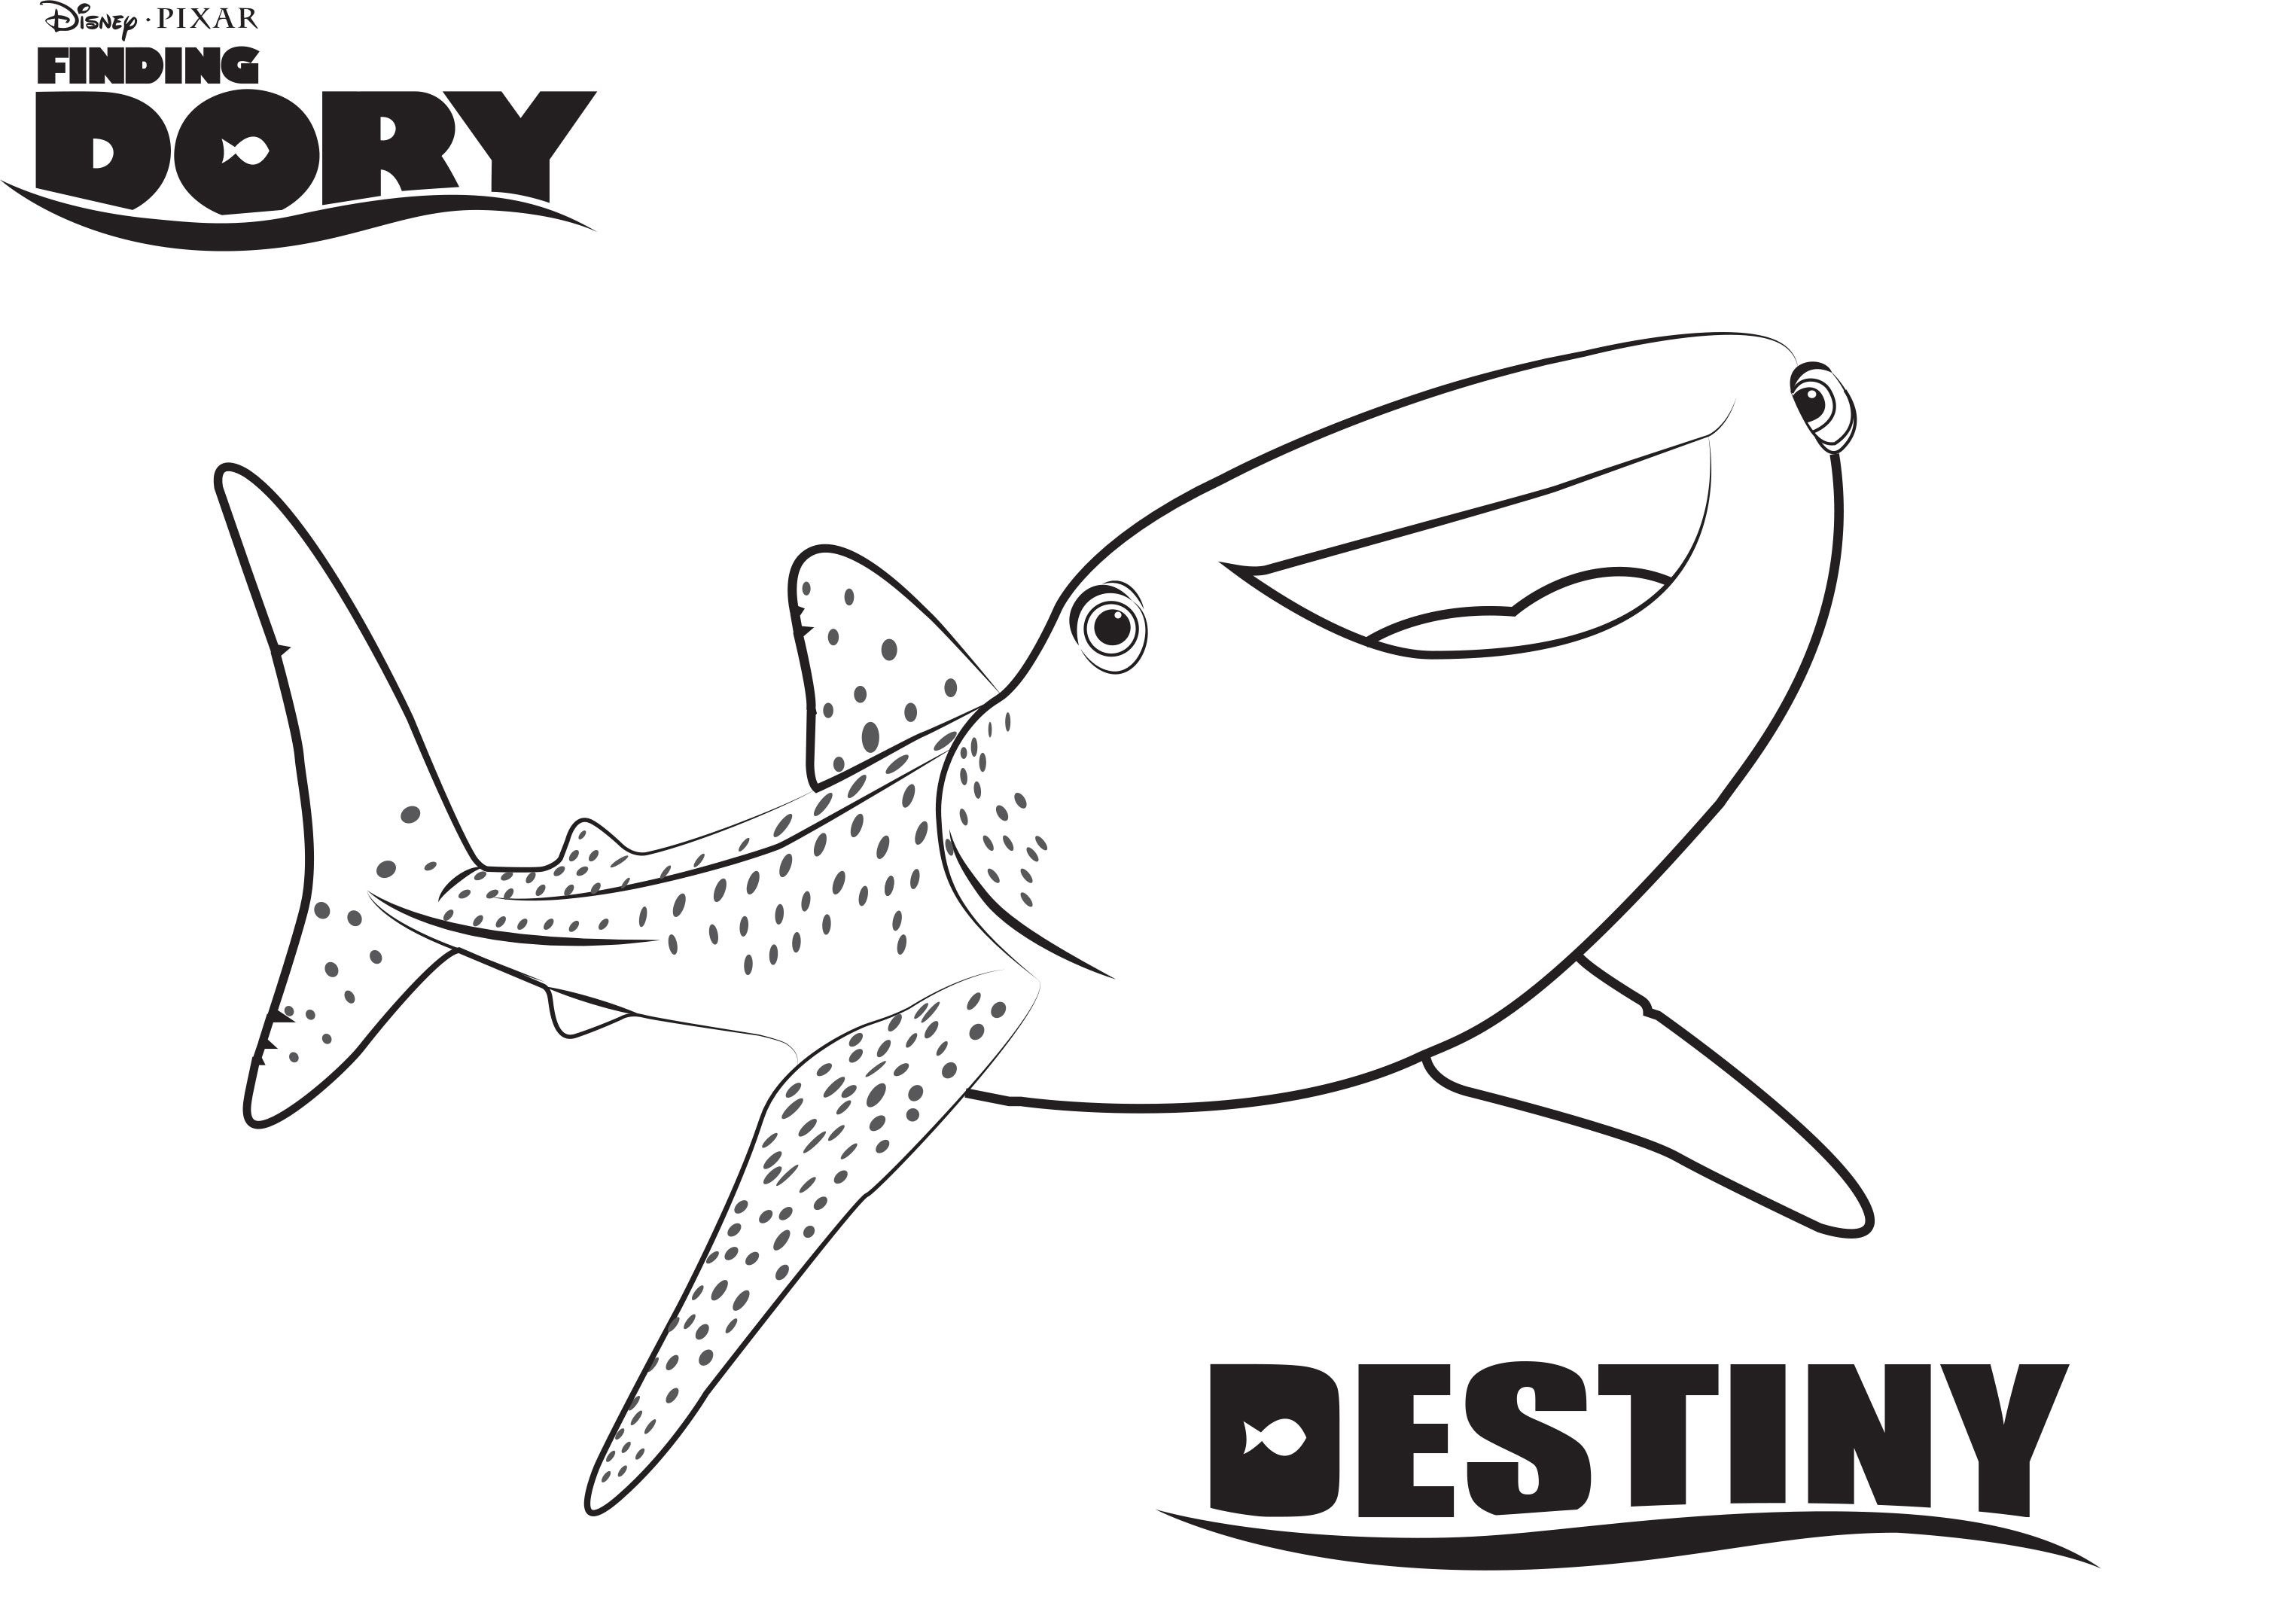 Finding Nemo Coloring Pages Disneys Finding Dory Coloring Pages Sheet Free Disney Printable